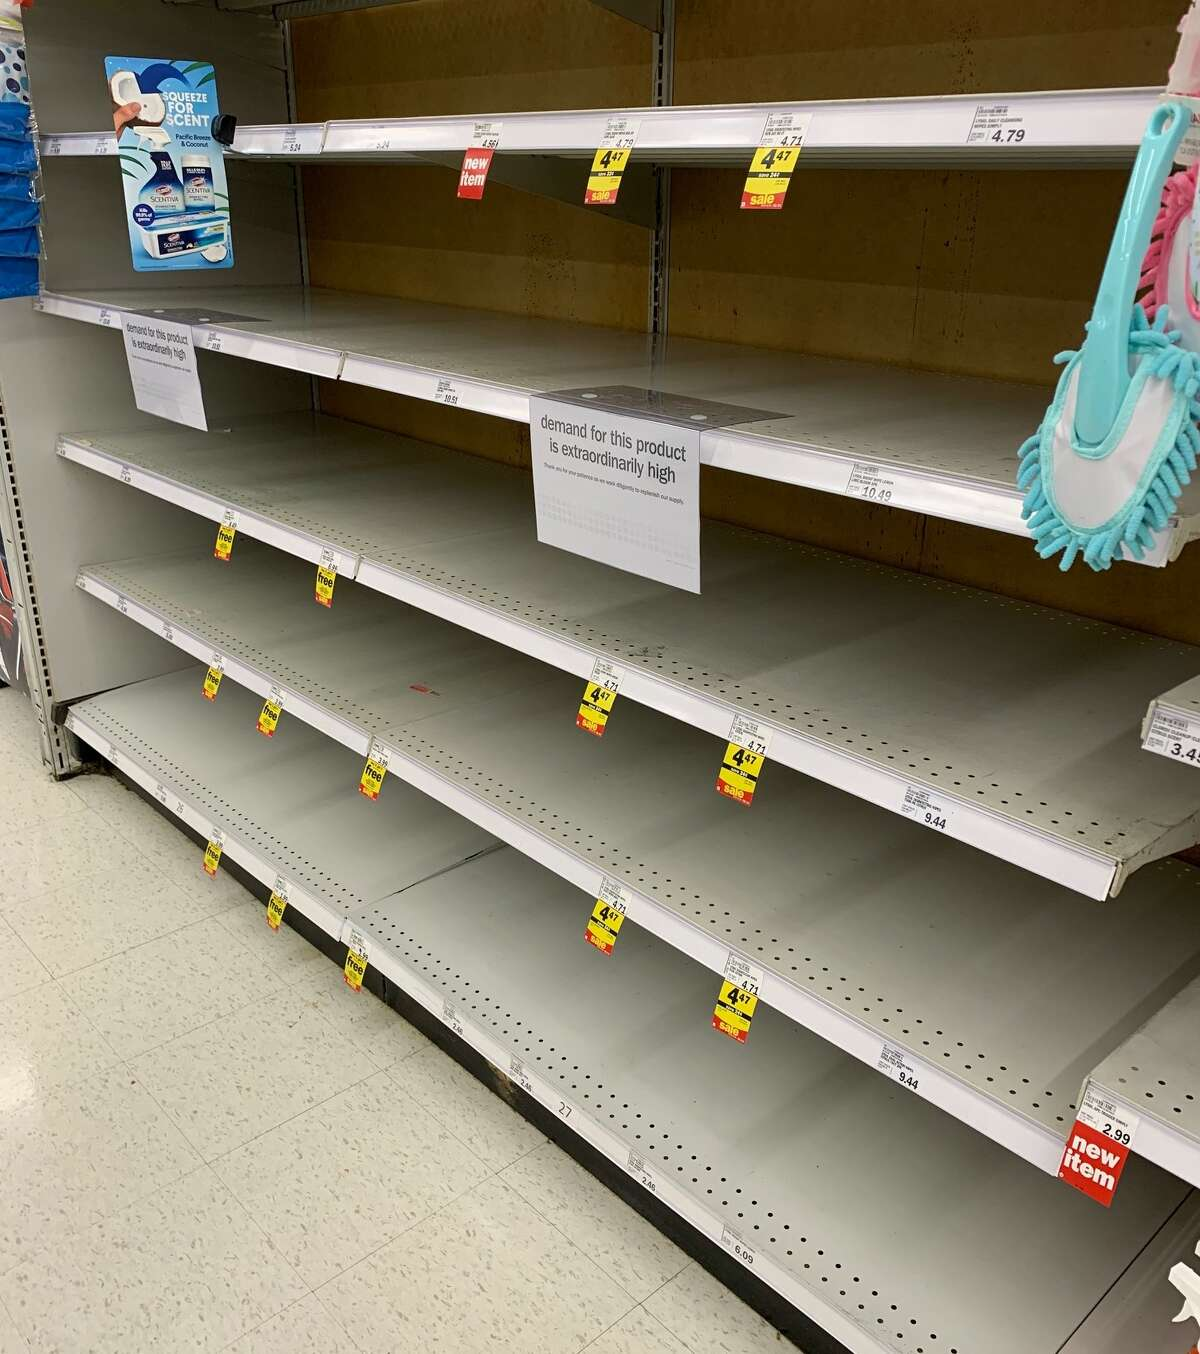 Local stores were selling out of toilet paper and disinfectant products, as well as other items Friday as shoppers prepared for a possible extended quarantine due to the coronavirus.